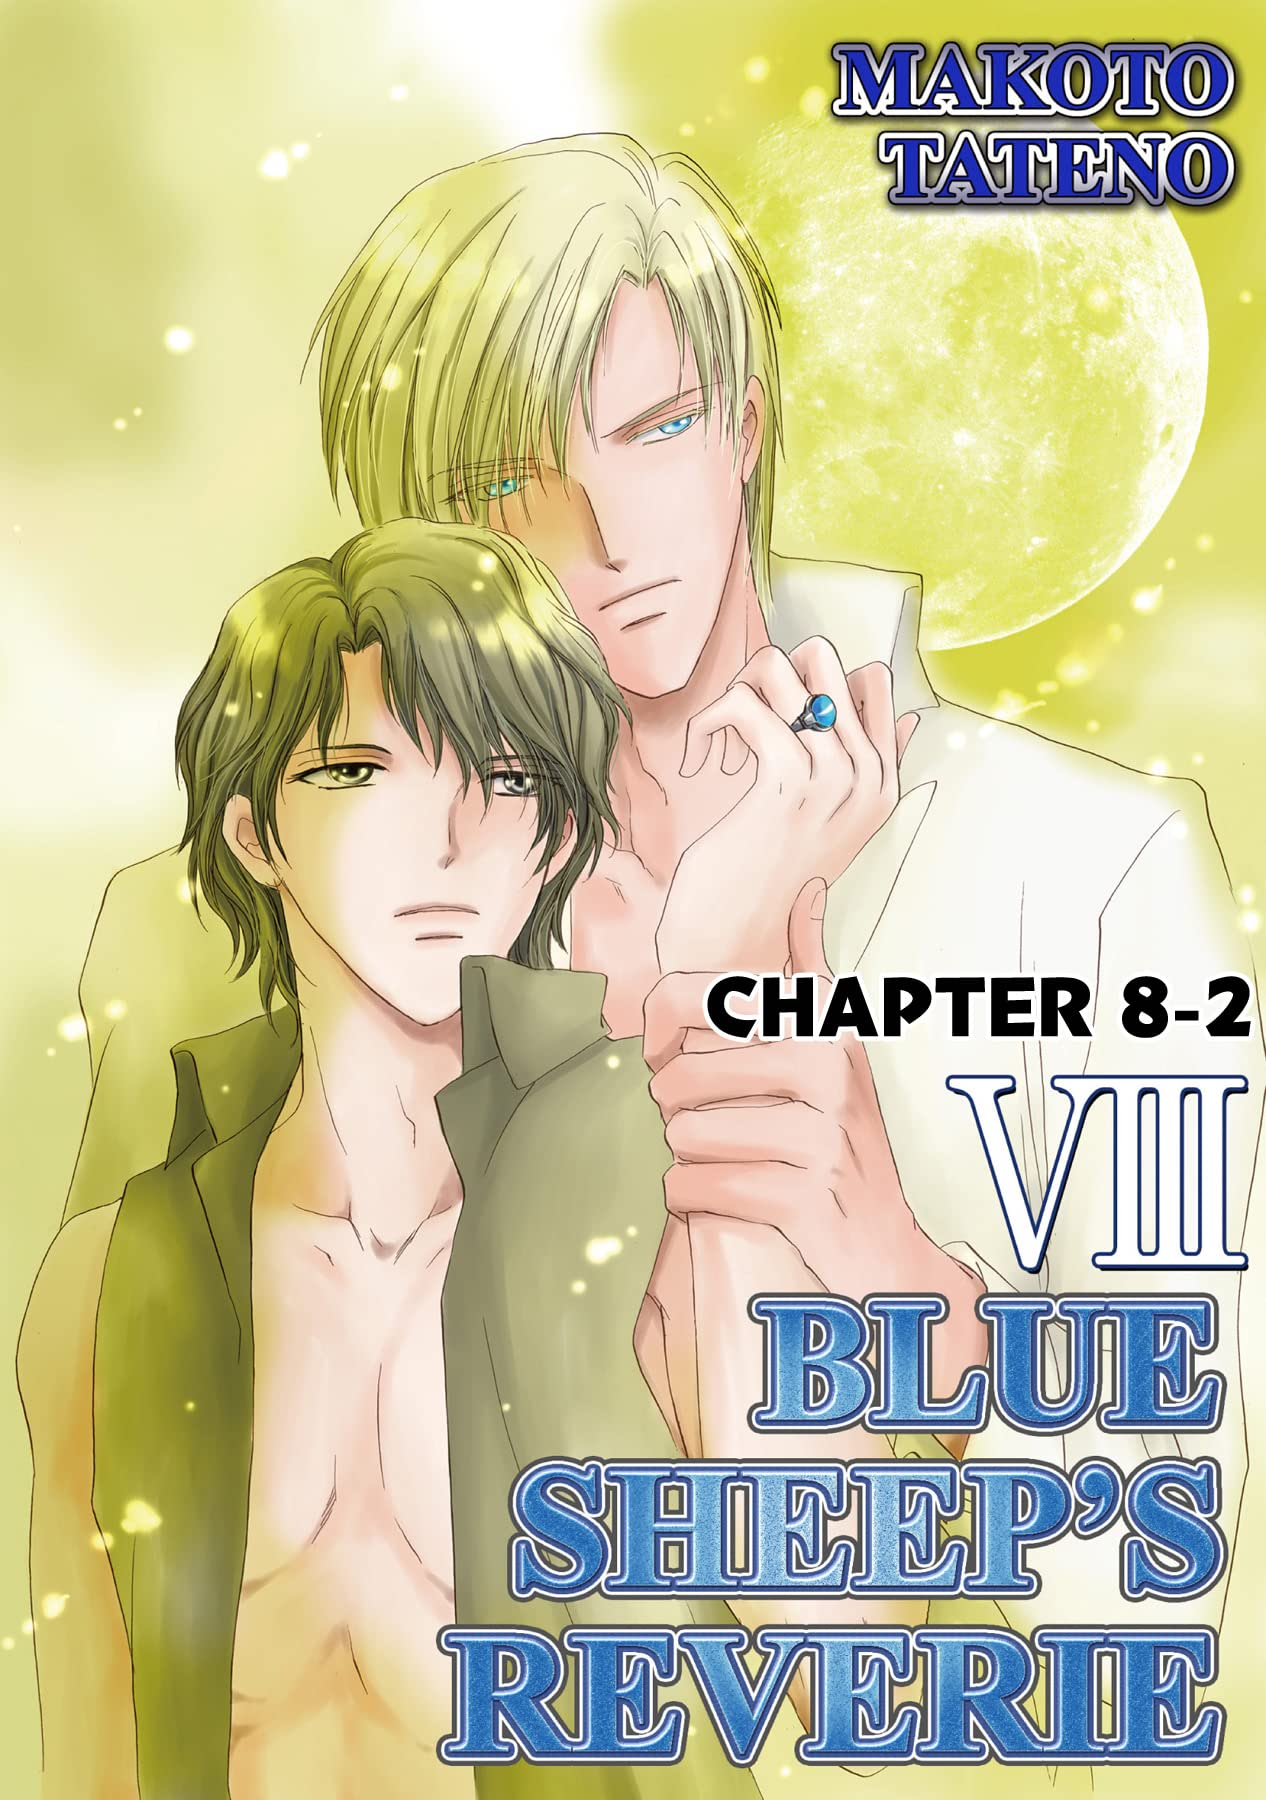 BLUE SHEEP'S REVERIE (Yaoi Manga) #29